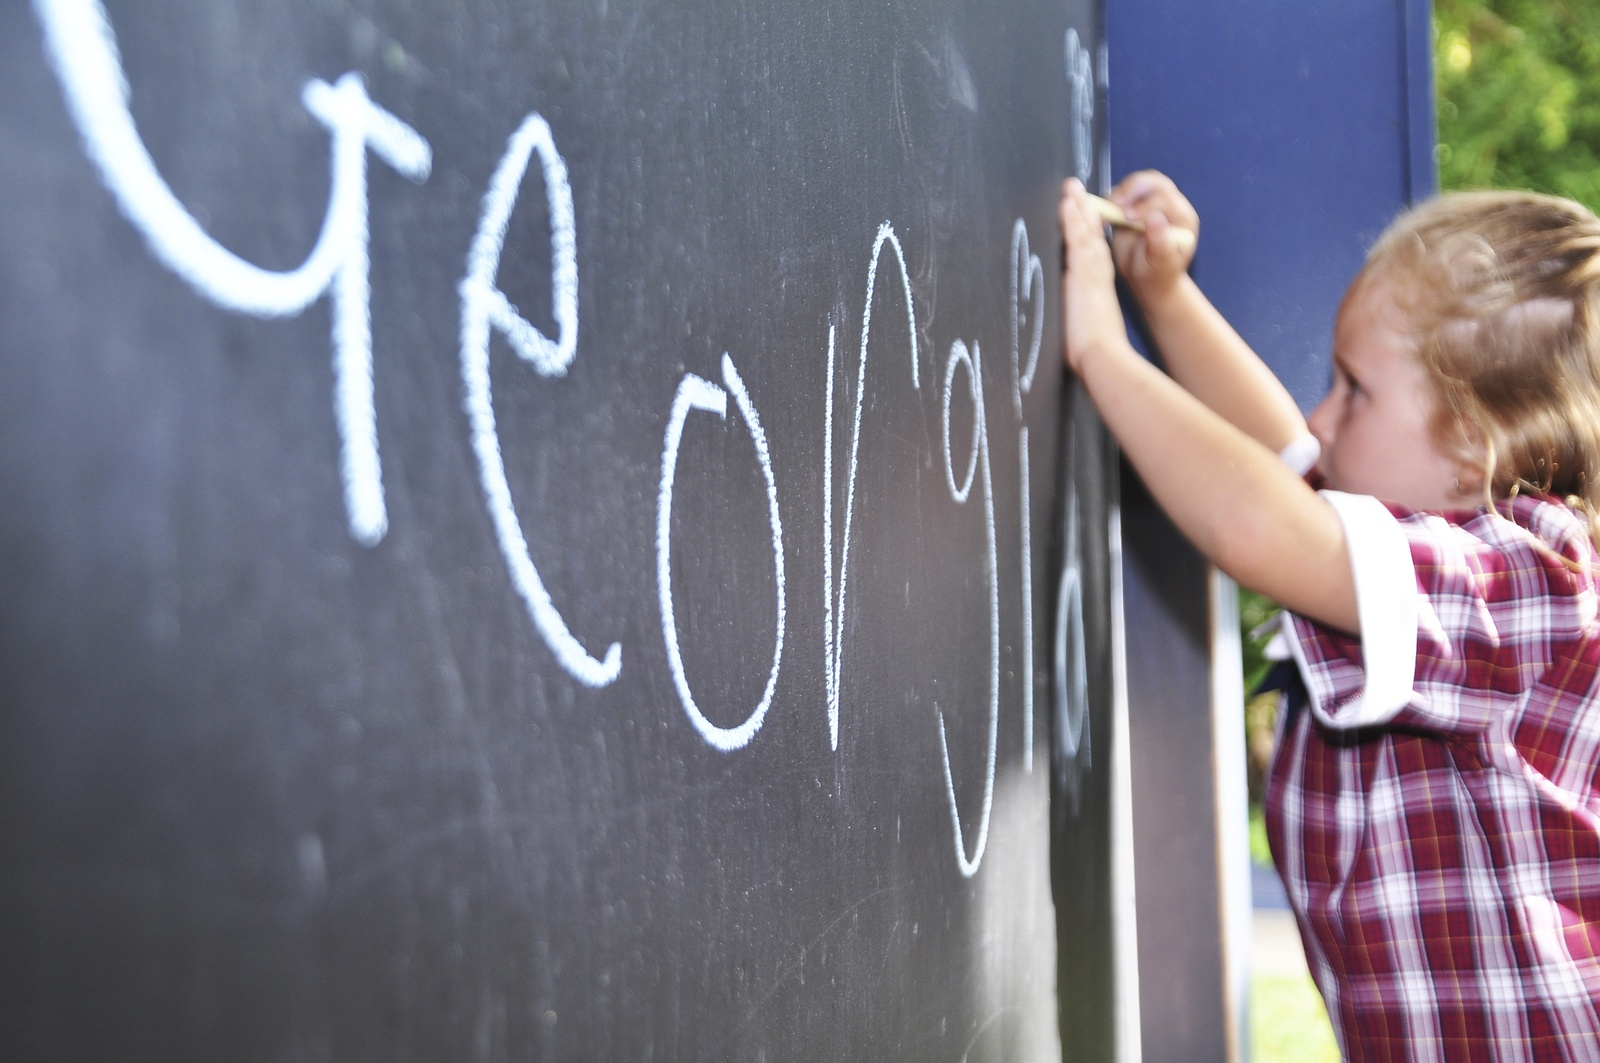 Girl at chalkboard. iStock_000075329265_Full.jpg